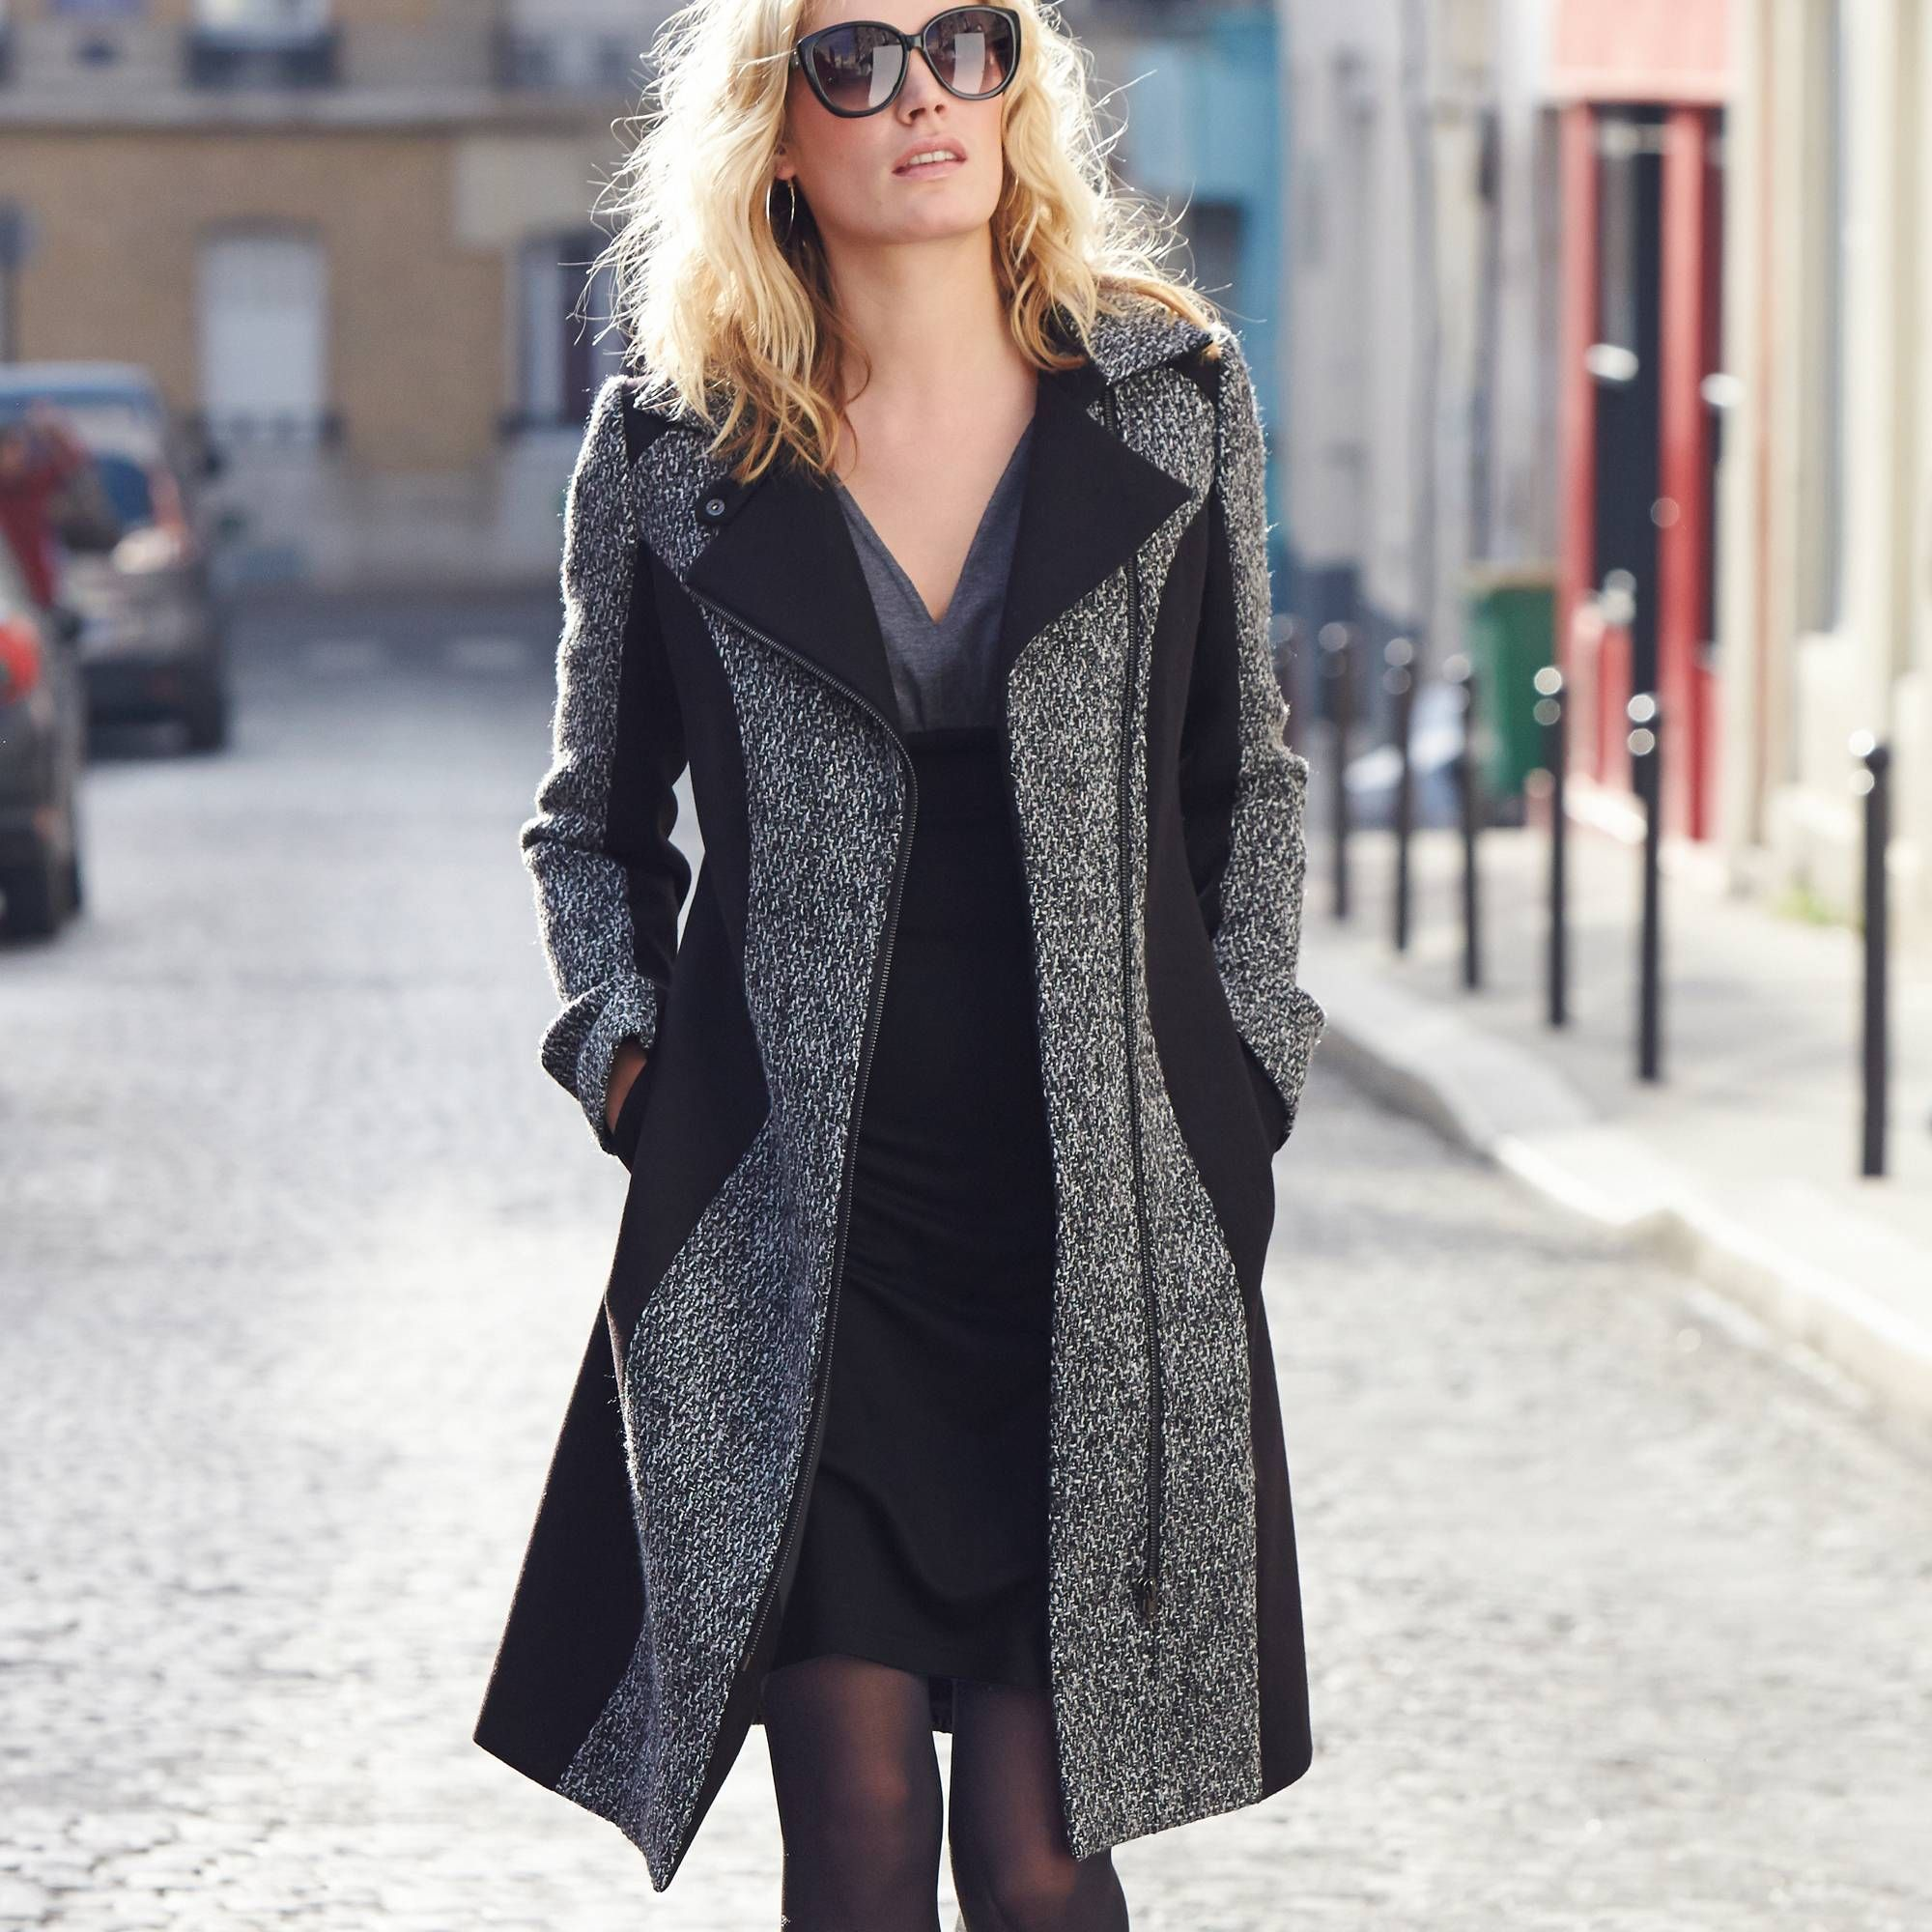 manteau femme votre mode 3 suisses coat pinterest. Black Bedroom Furniture Sets. Home Design Ideas